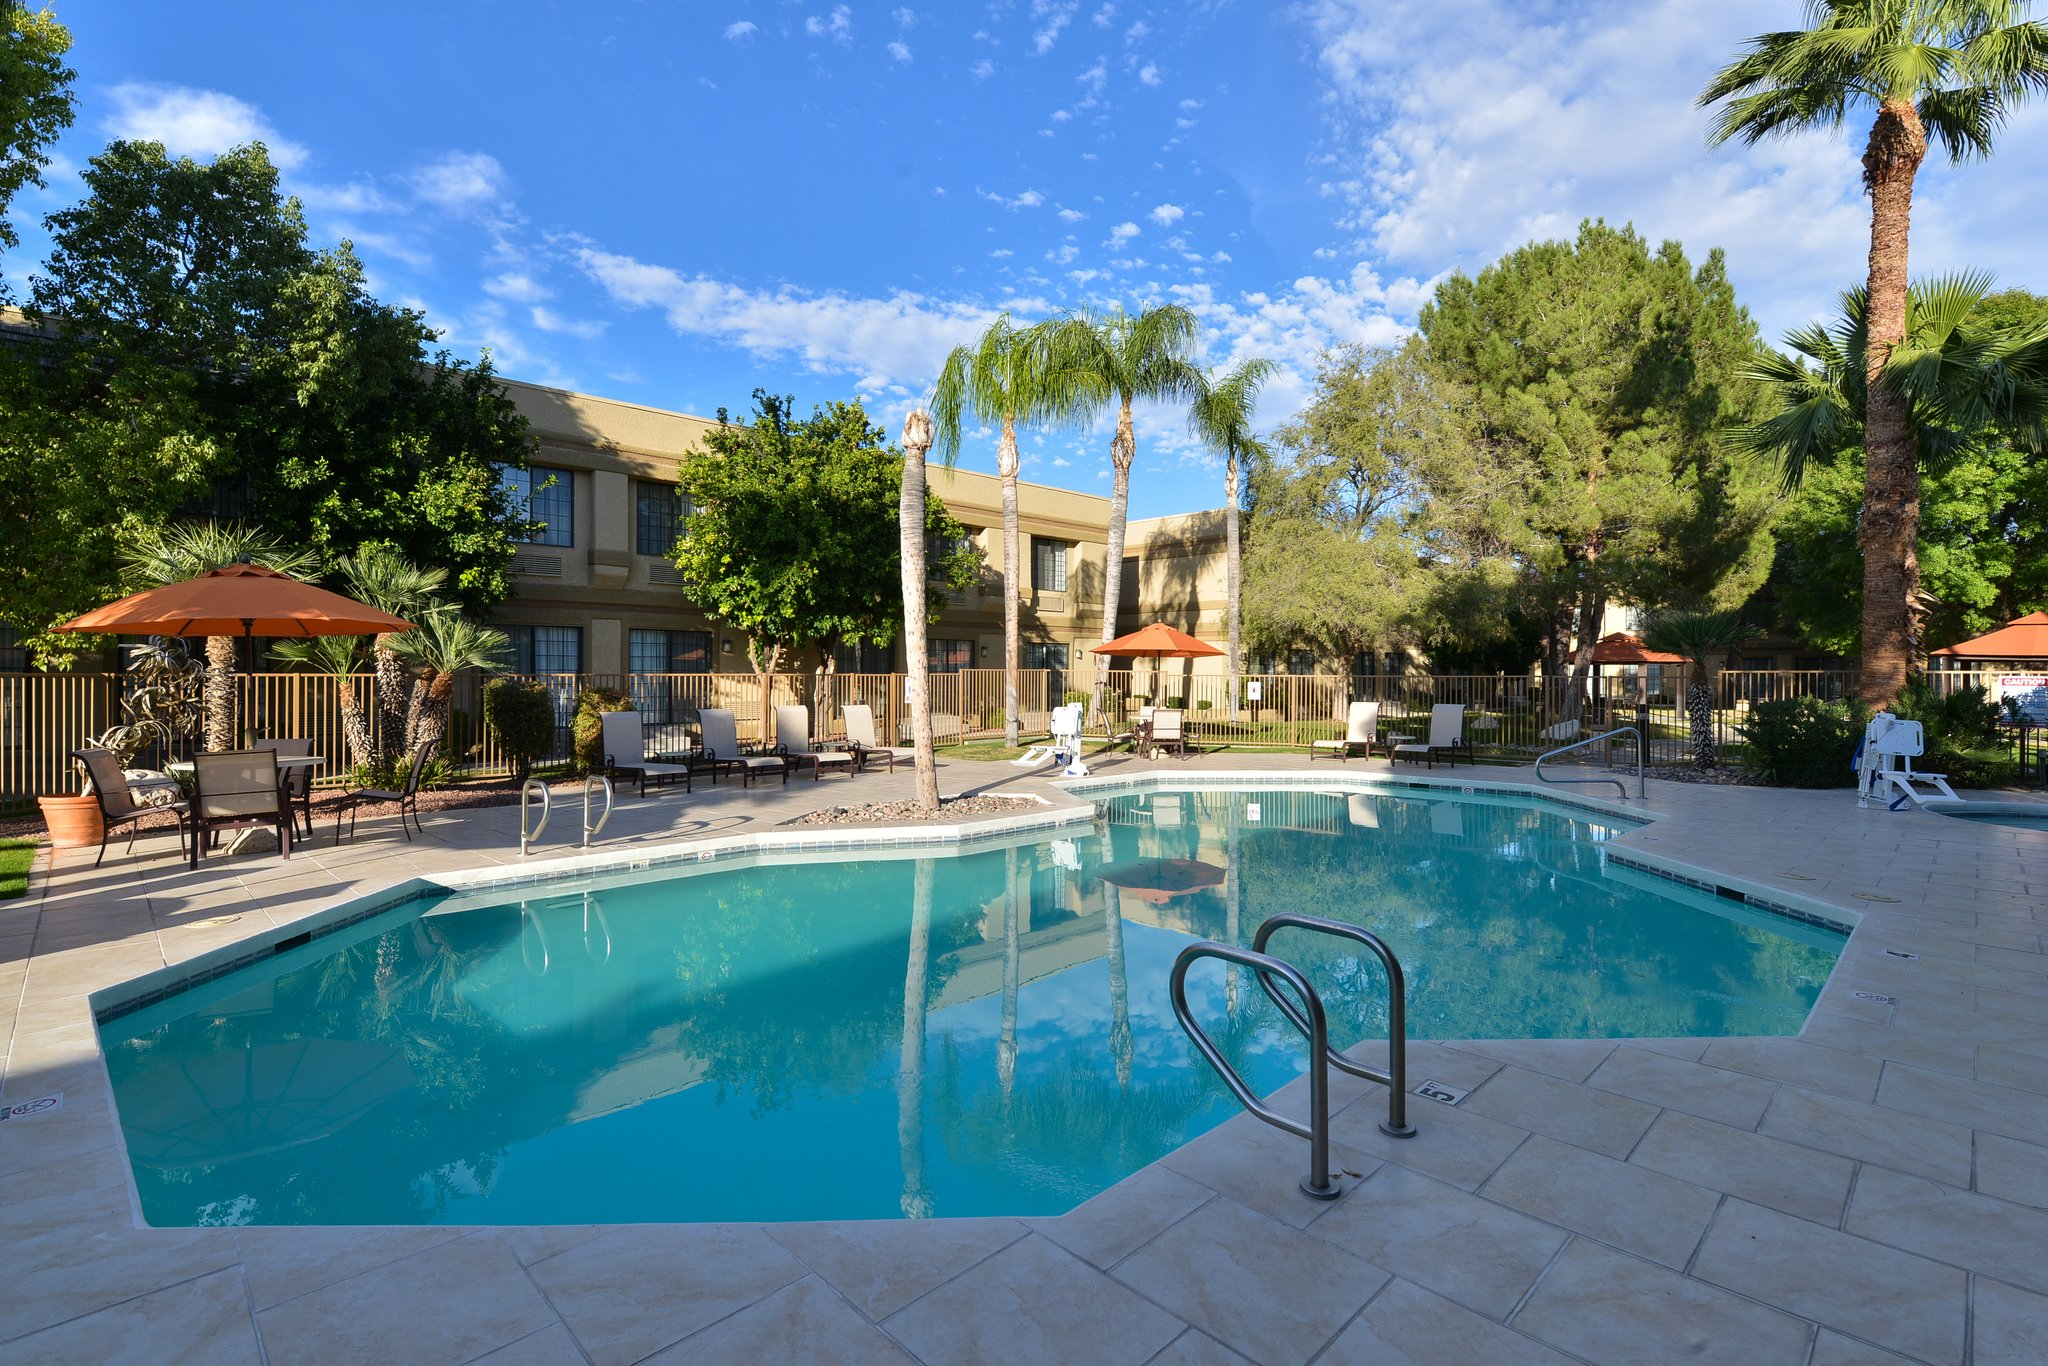 outdoor pool - Resort Hotels In Tucson Az